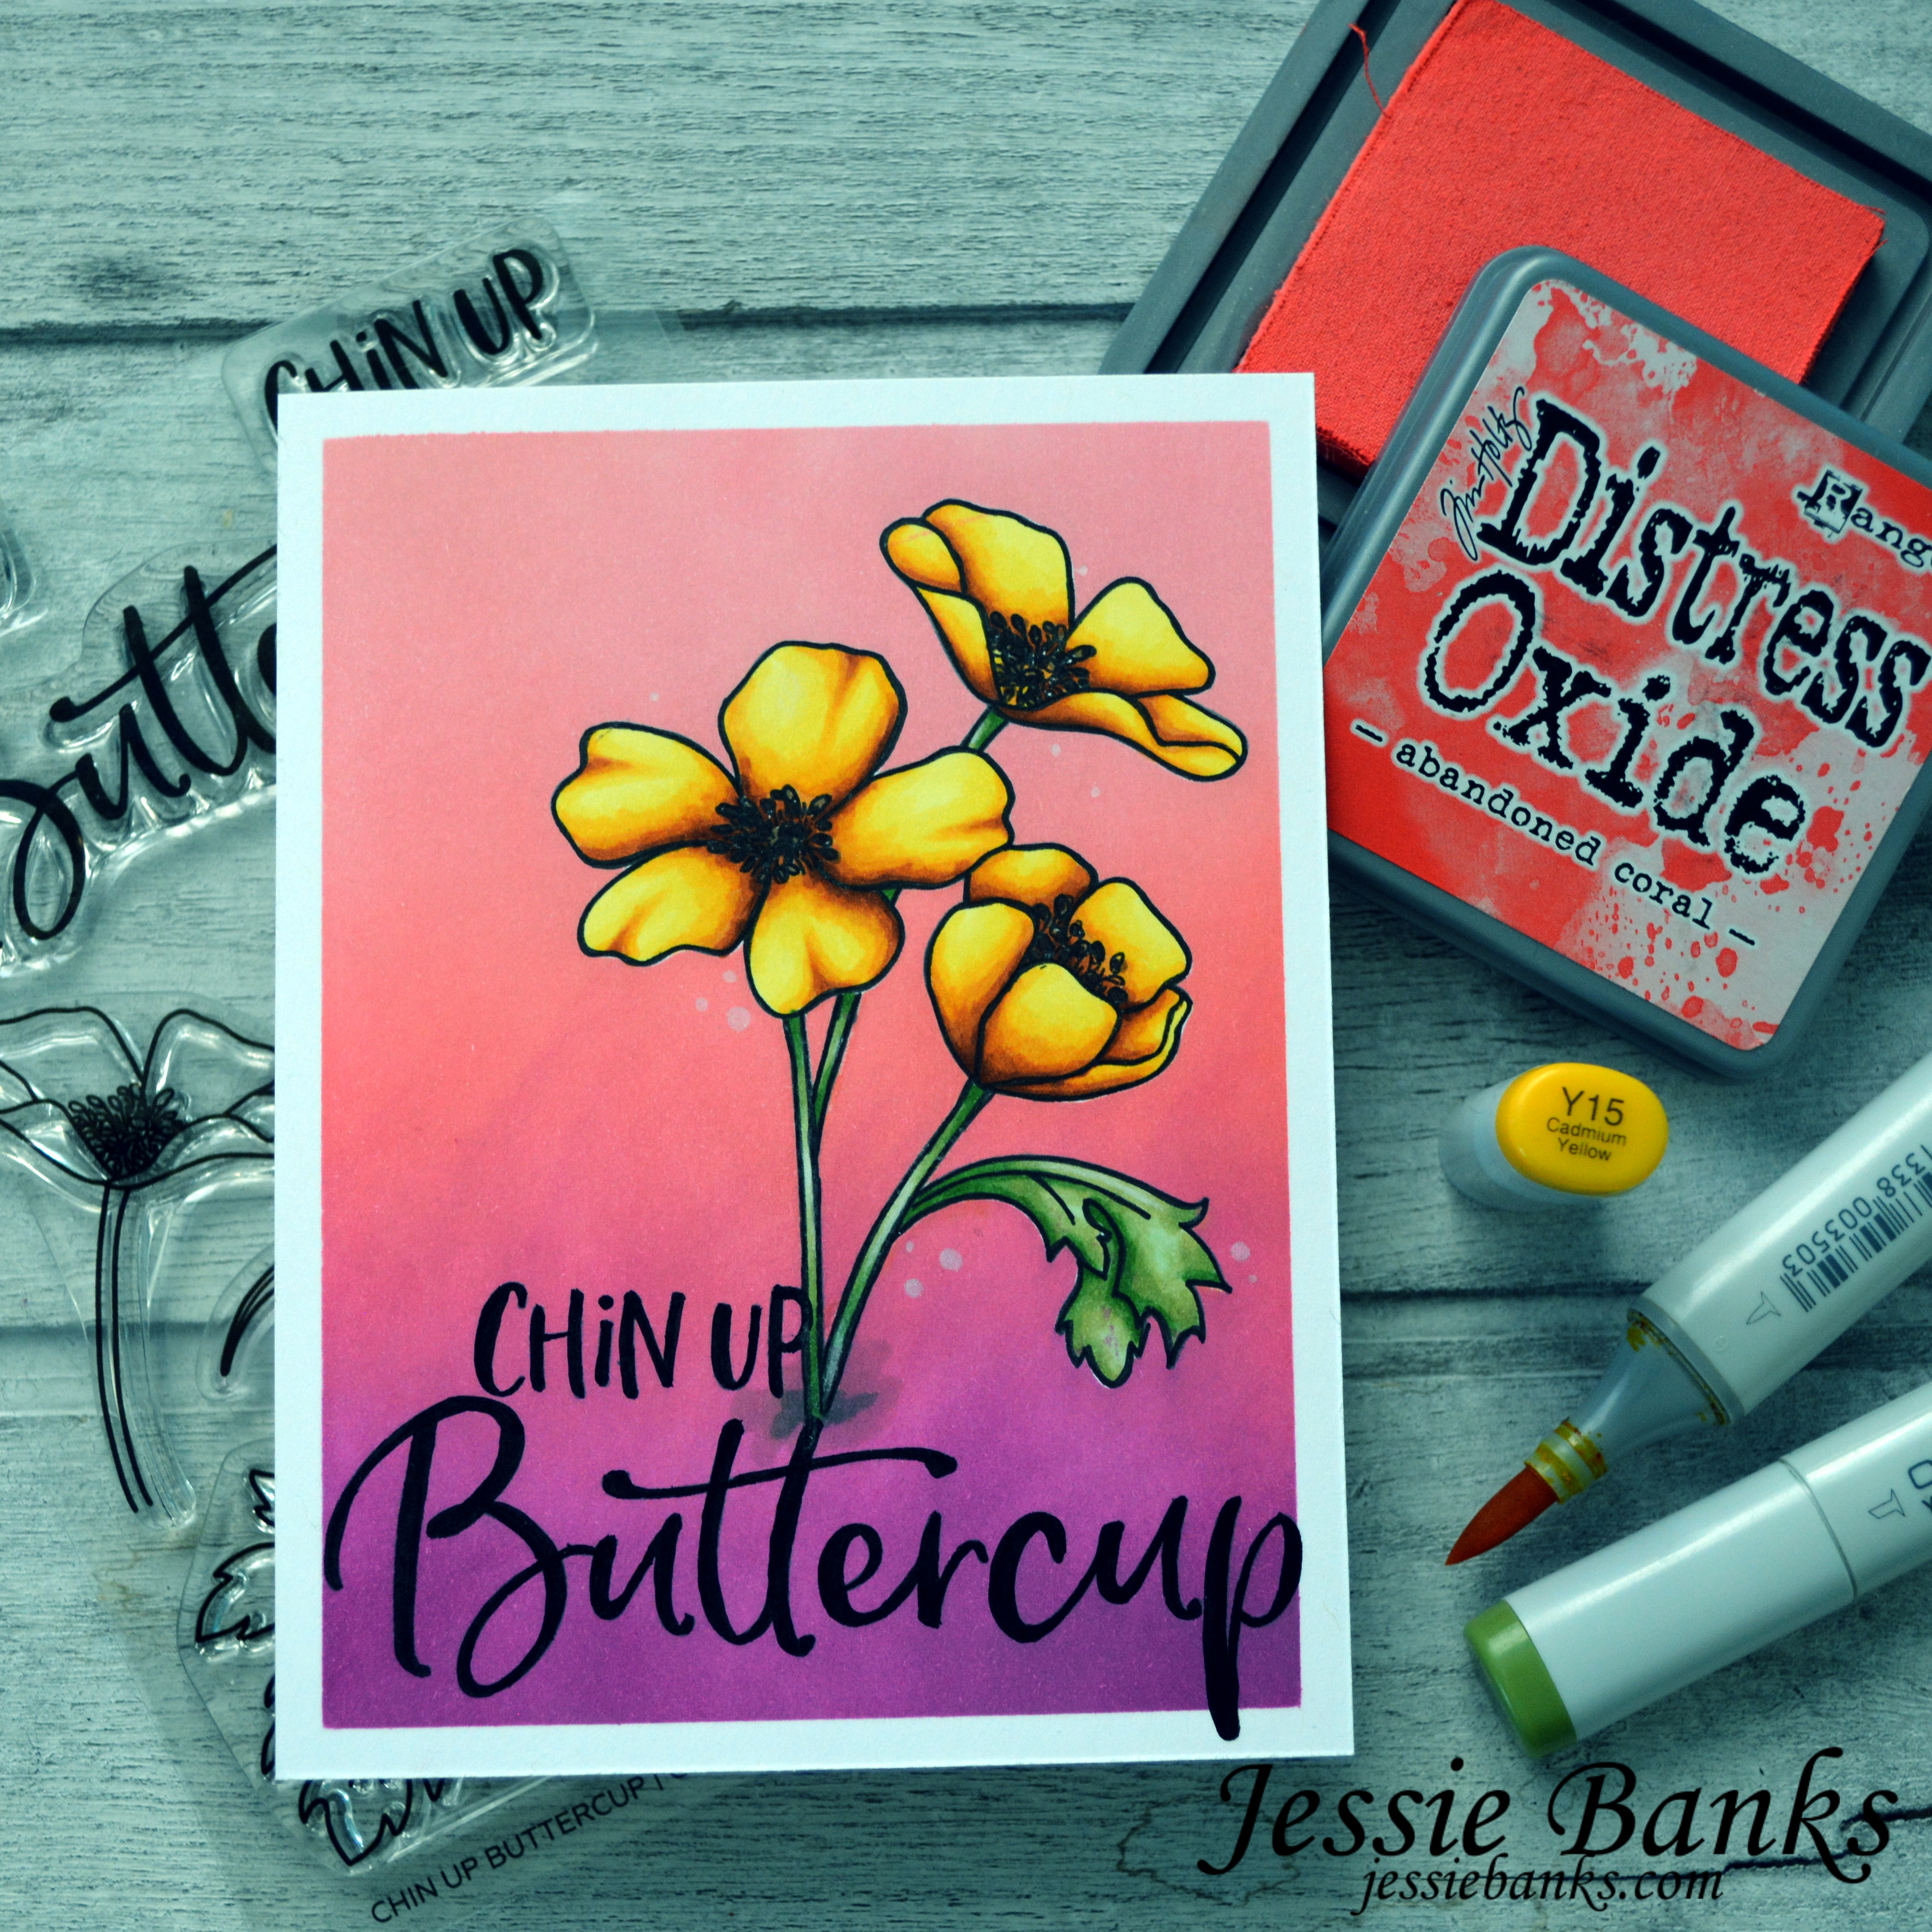 Honey Bee Stamps - Chin Up Buttercup - Jessie Banks